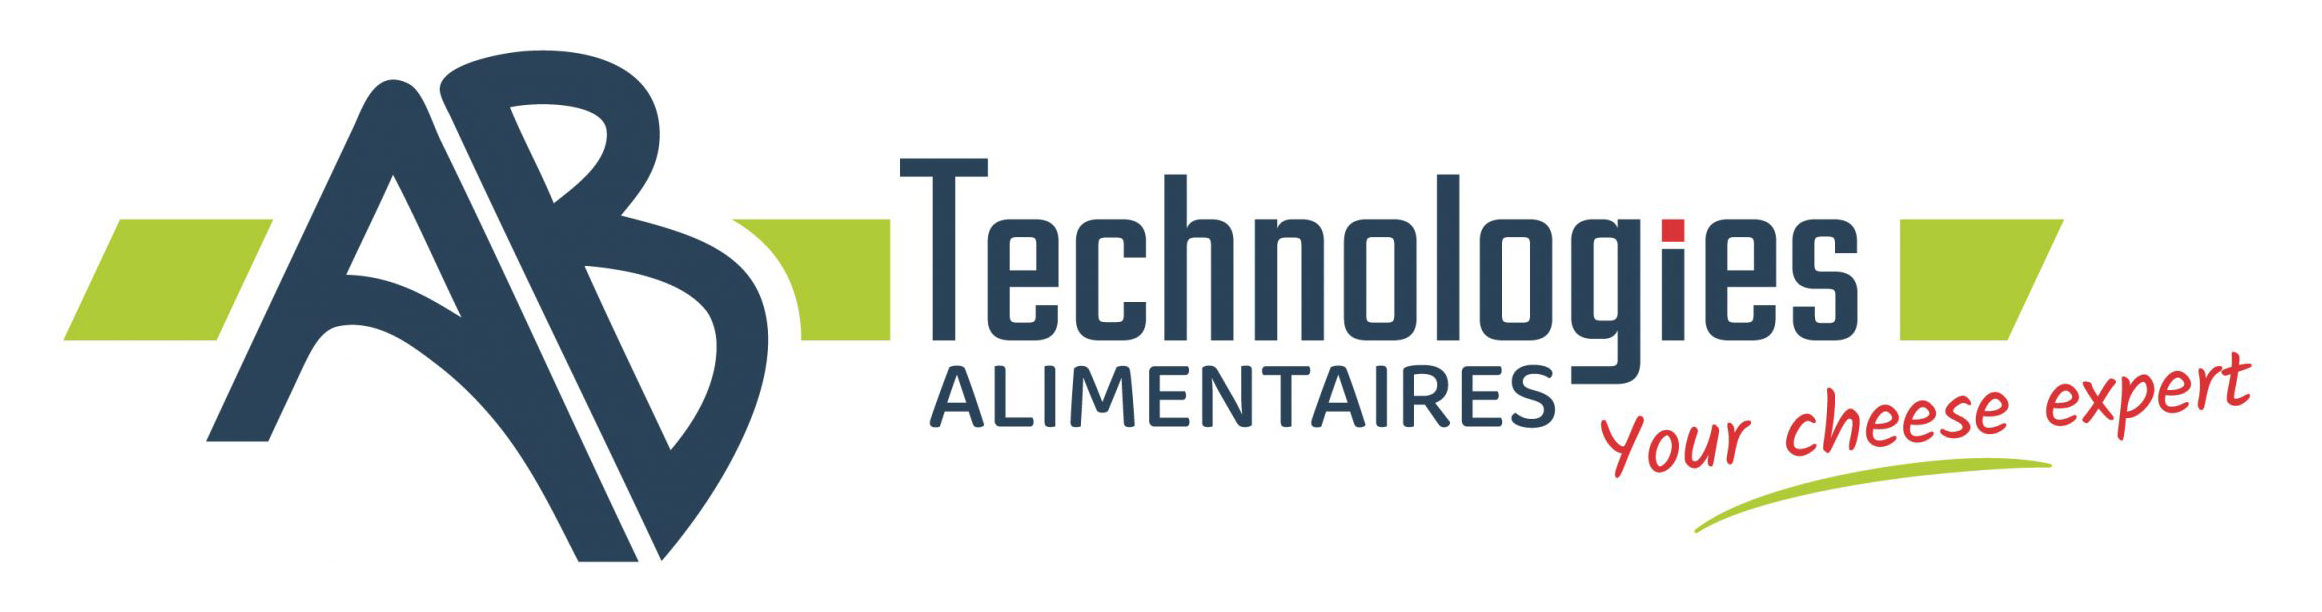 AB Technologies Alimentaires